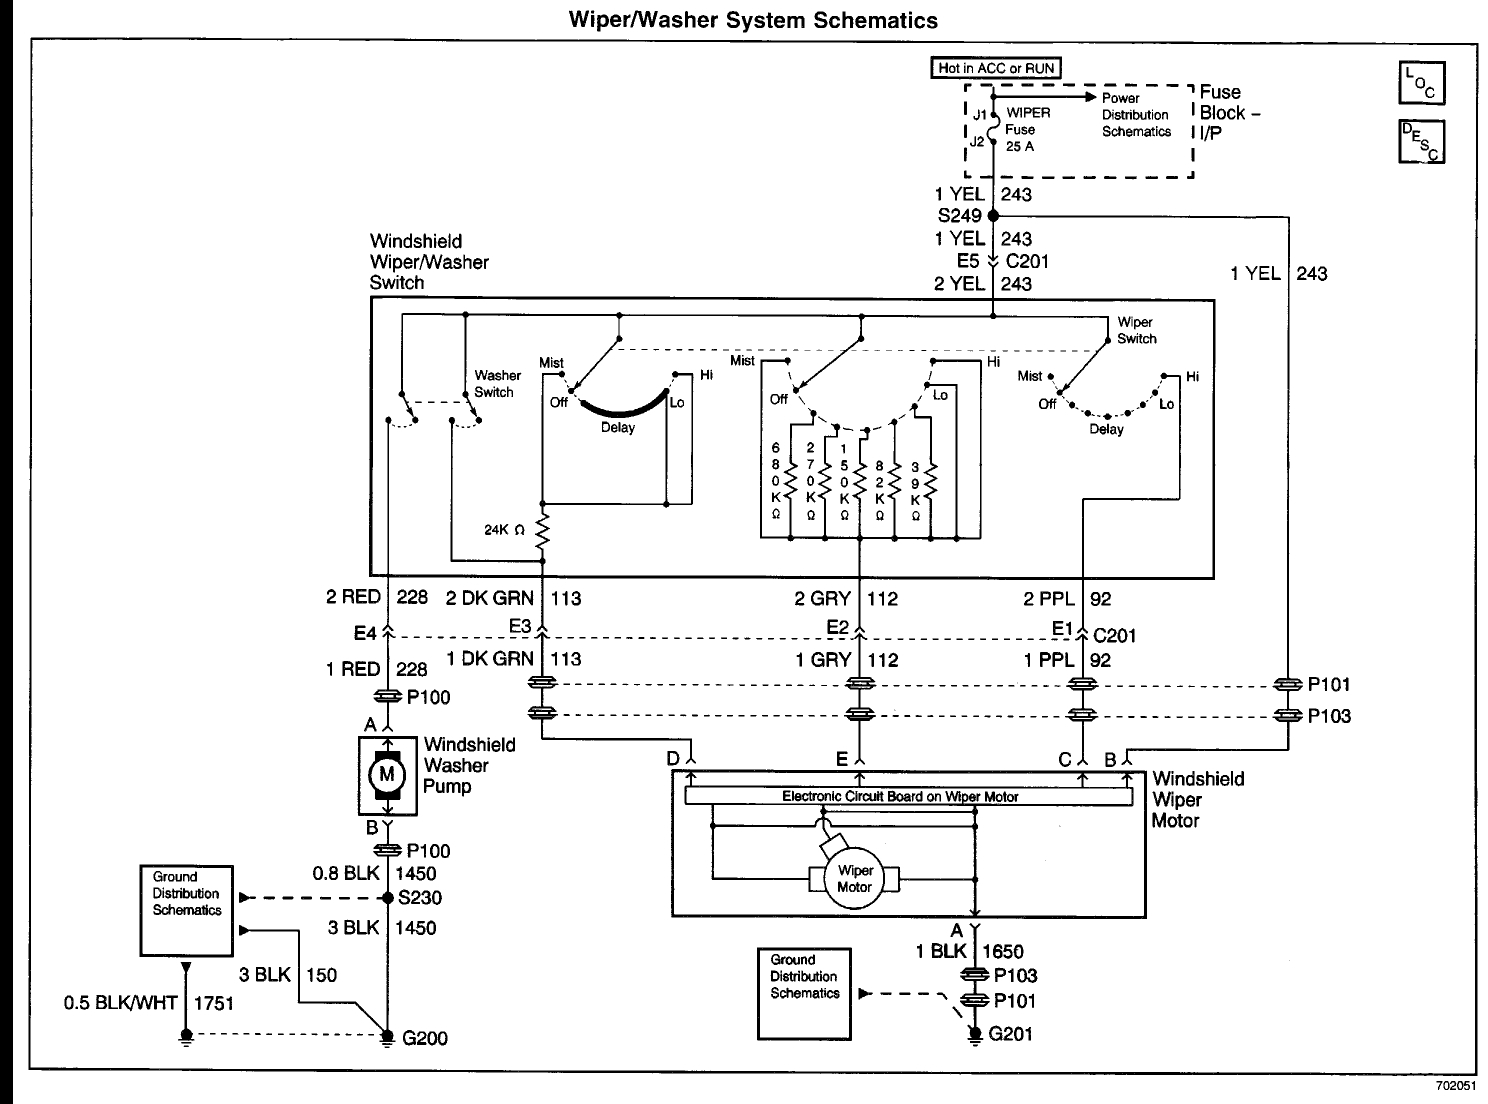 1998 buick wiper motor wiring diagram